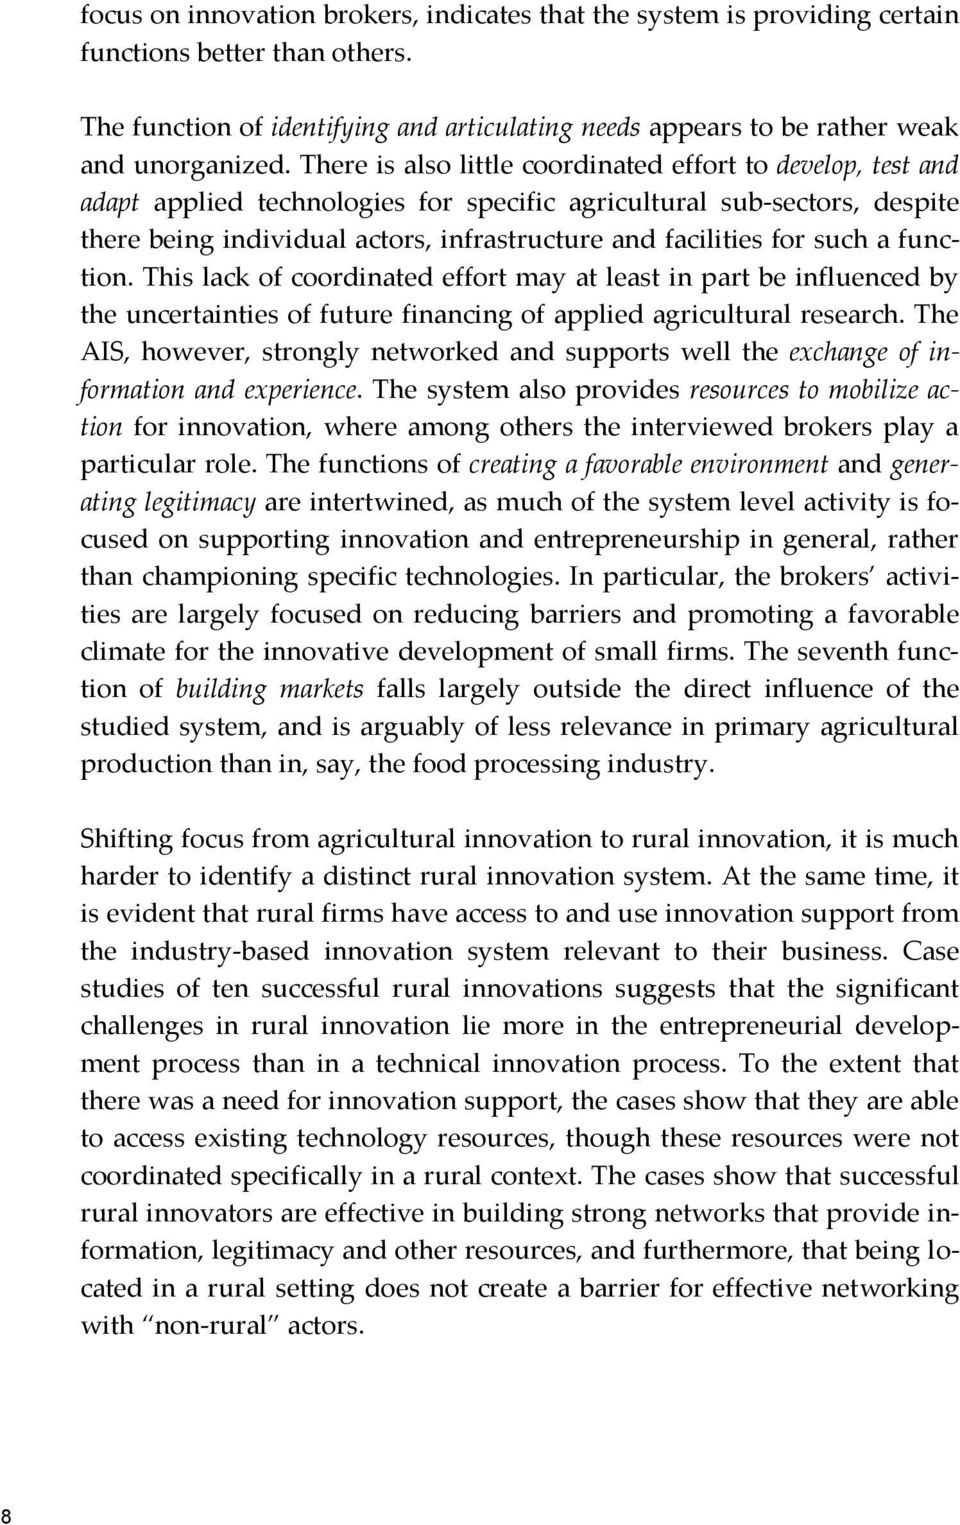 such a function. This lack of coordinated effort may at least in part be influenced by the uncertainties of future financing of applied agricultural research.